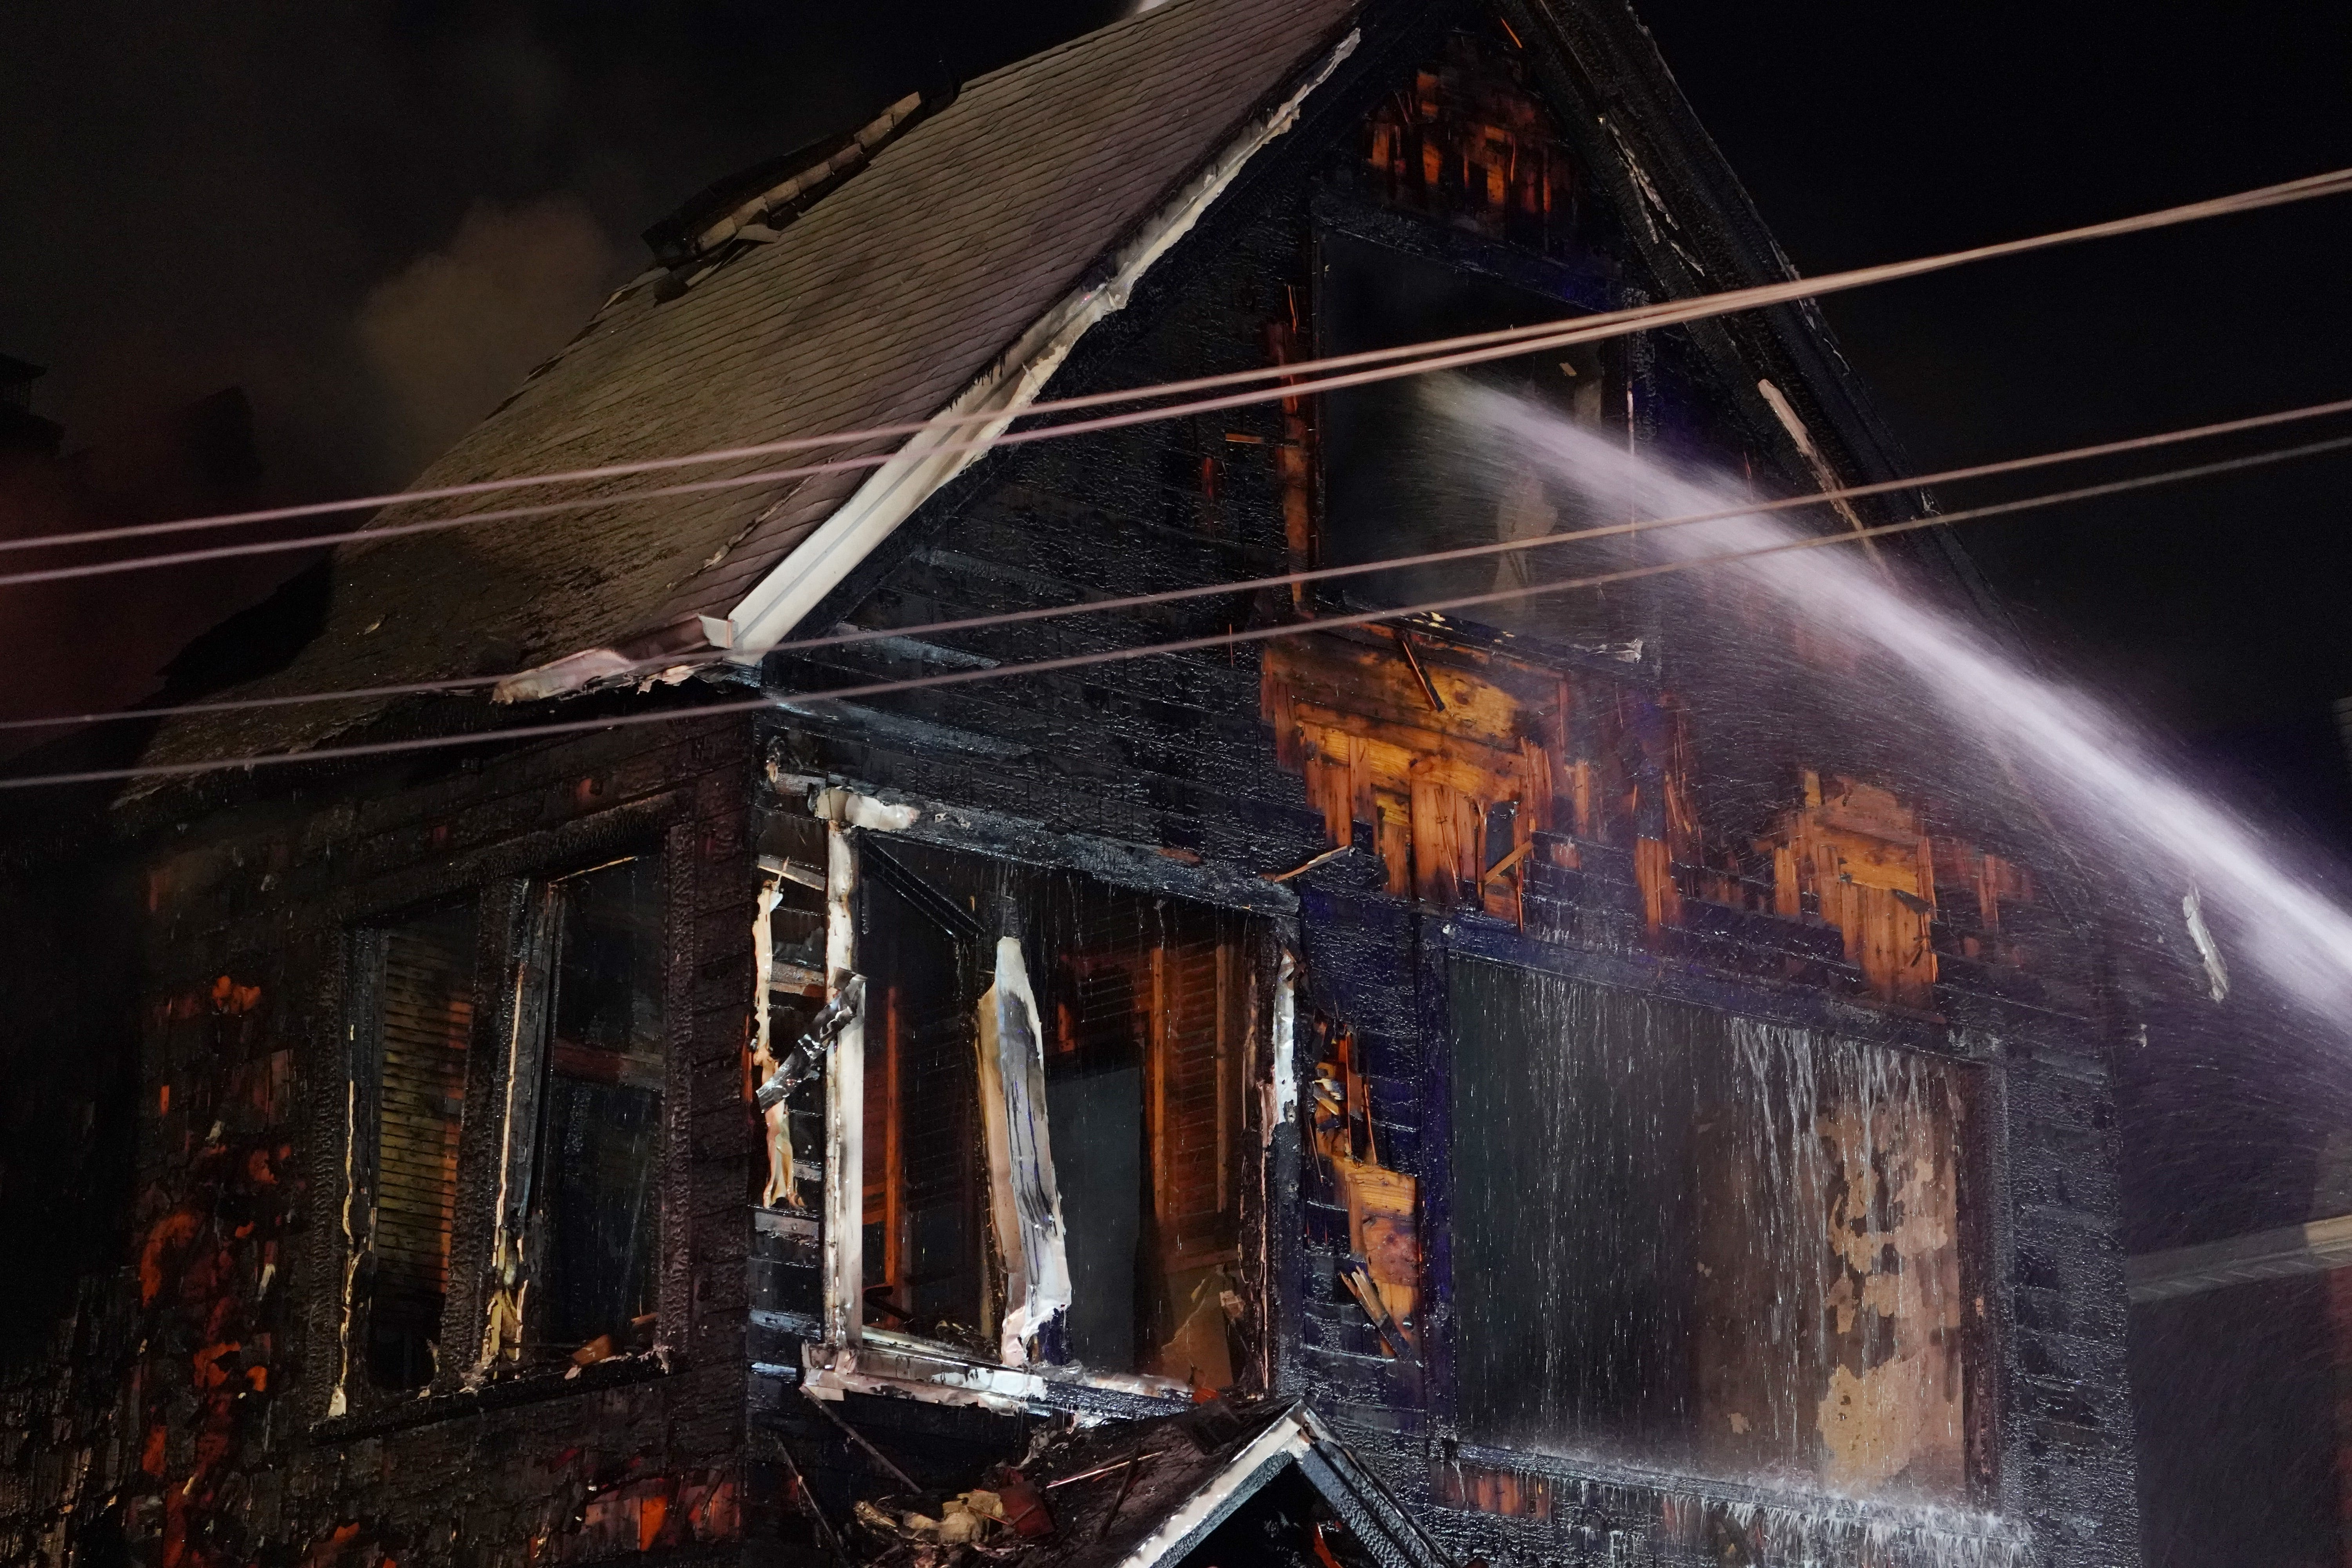 Garfield Nj Storageblue To Fundraise For Cop Who Lost Home In Fire